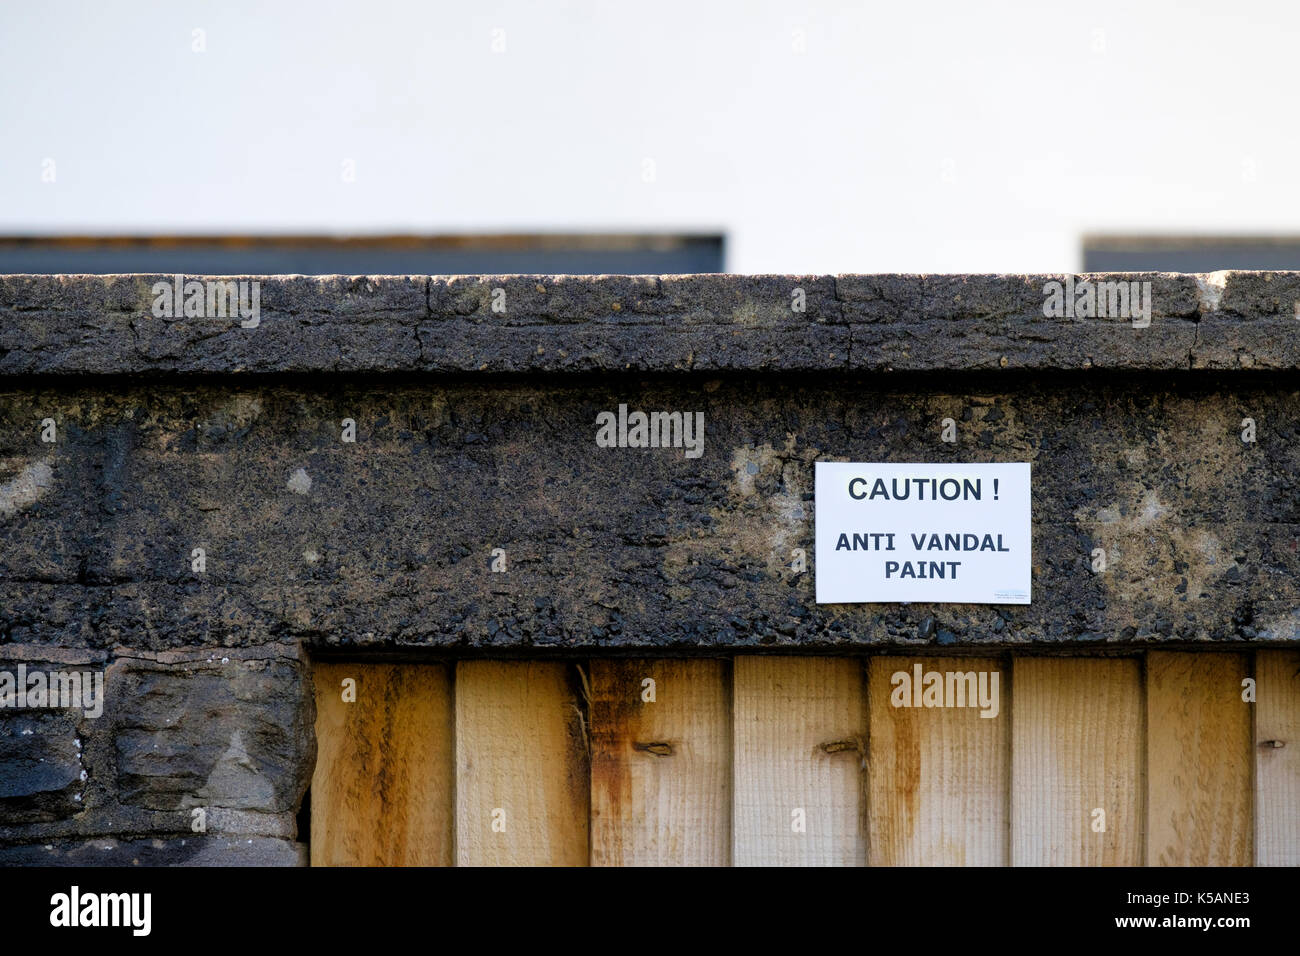 A mandatory sign placed on a house wall warning the the owner has used anti vandal paint in the vicinity - Stock Image